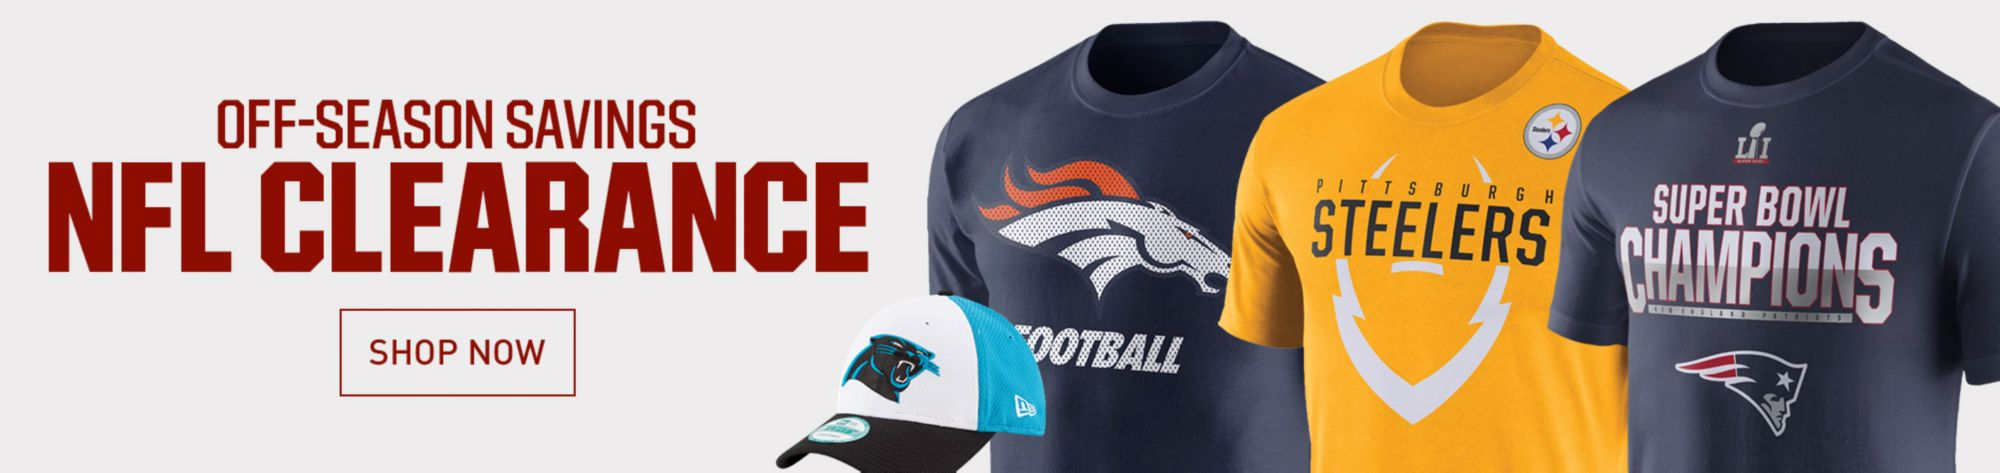 Clearance NFL